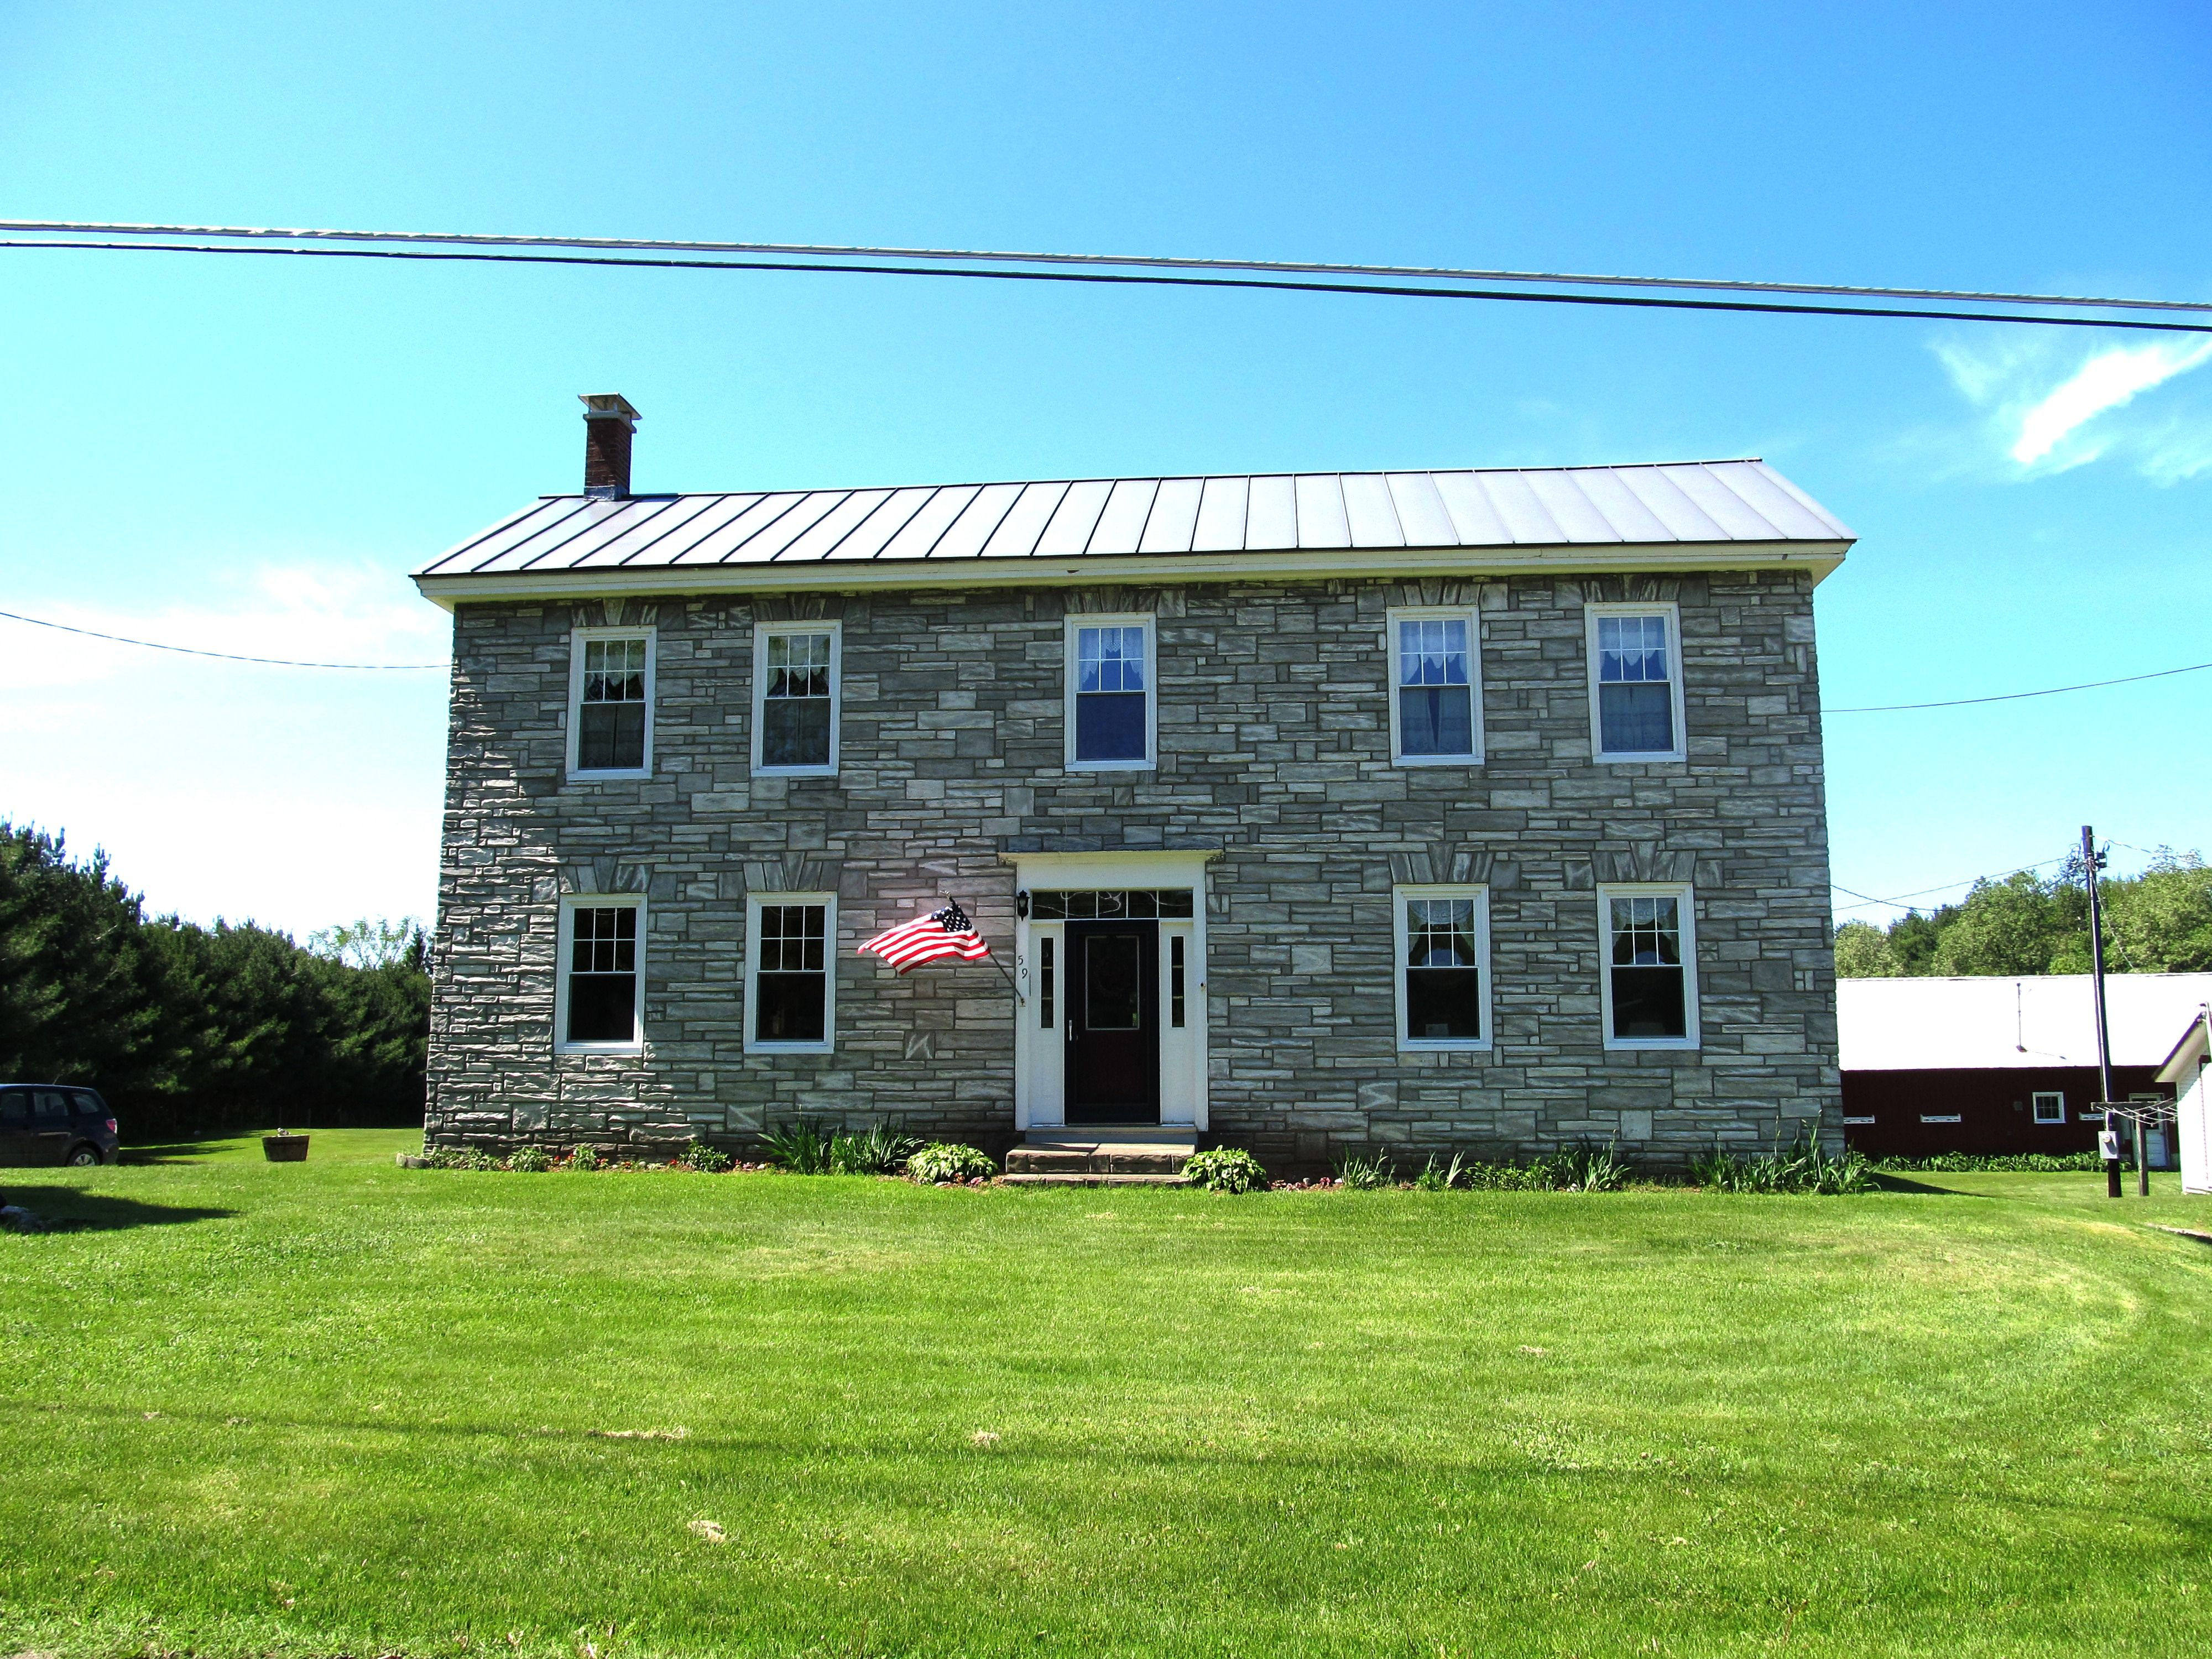 inn vermont the pet phineas bed swann peak dog friendly breakfast near jay and in